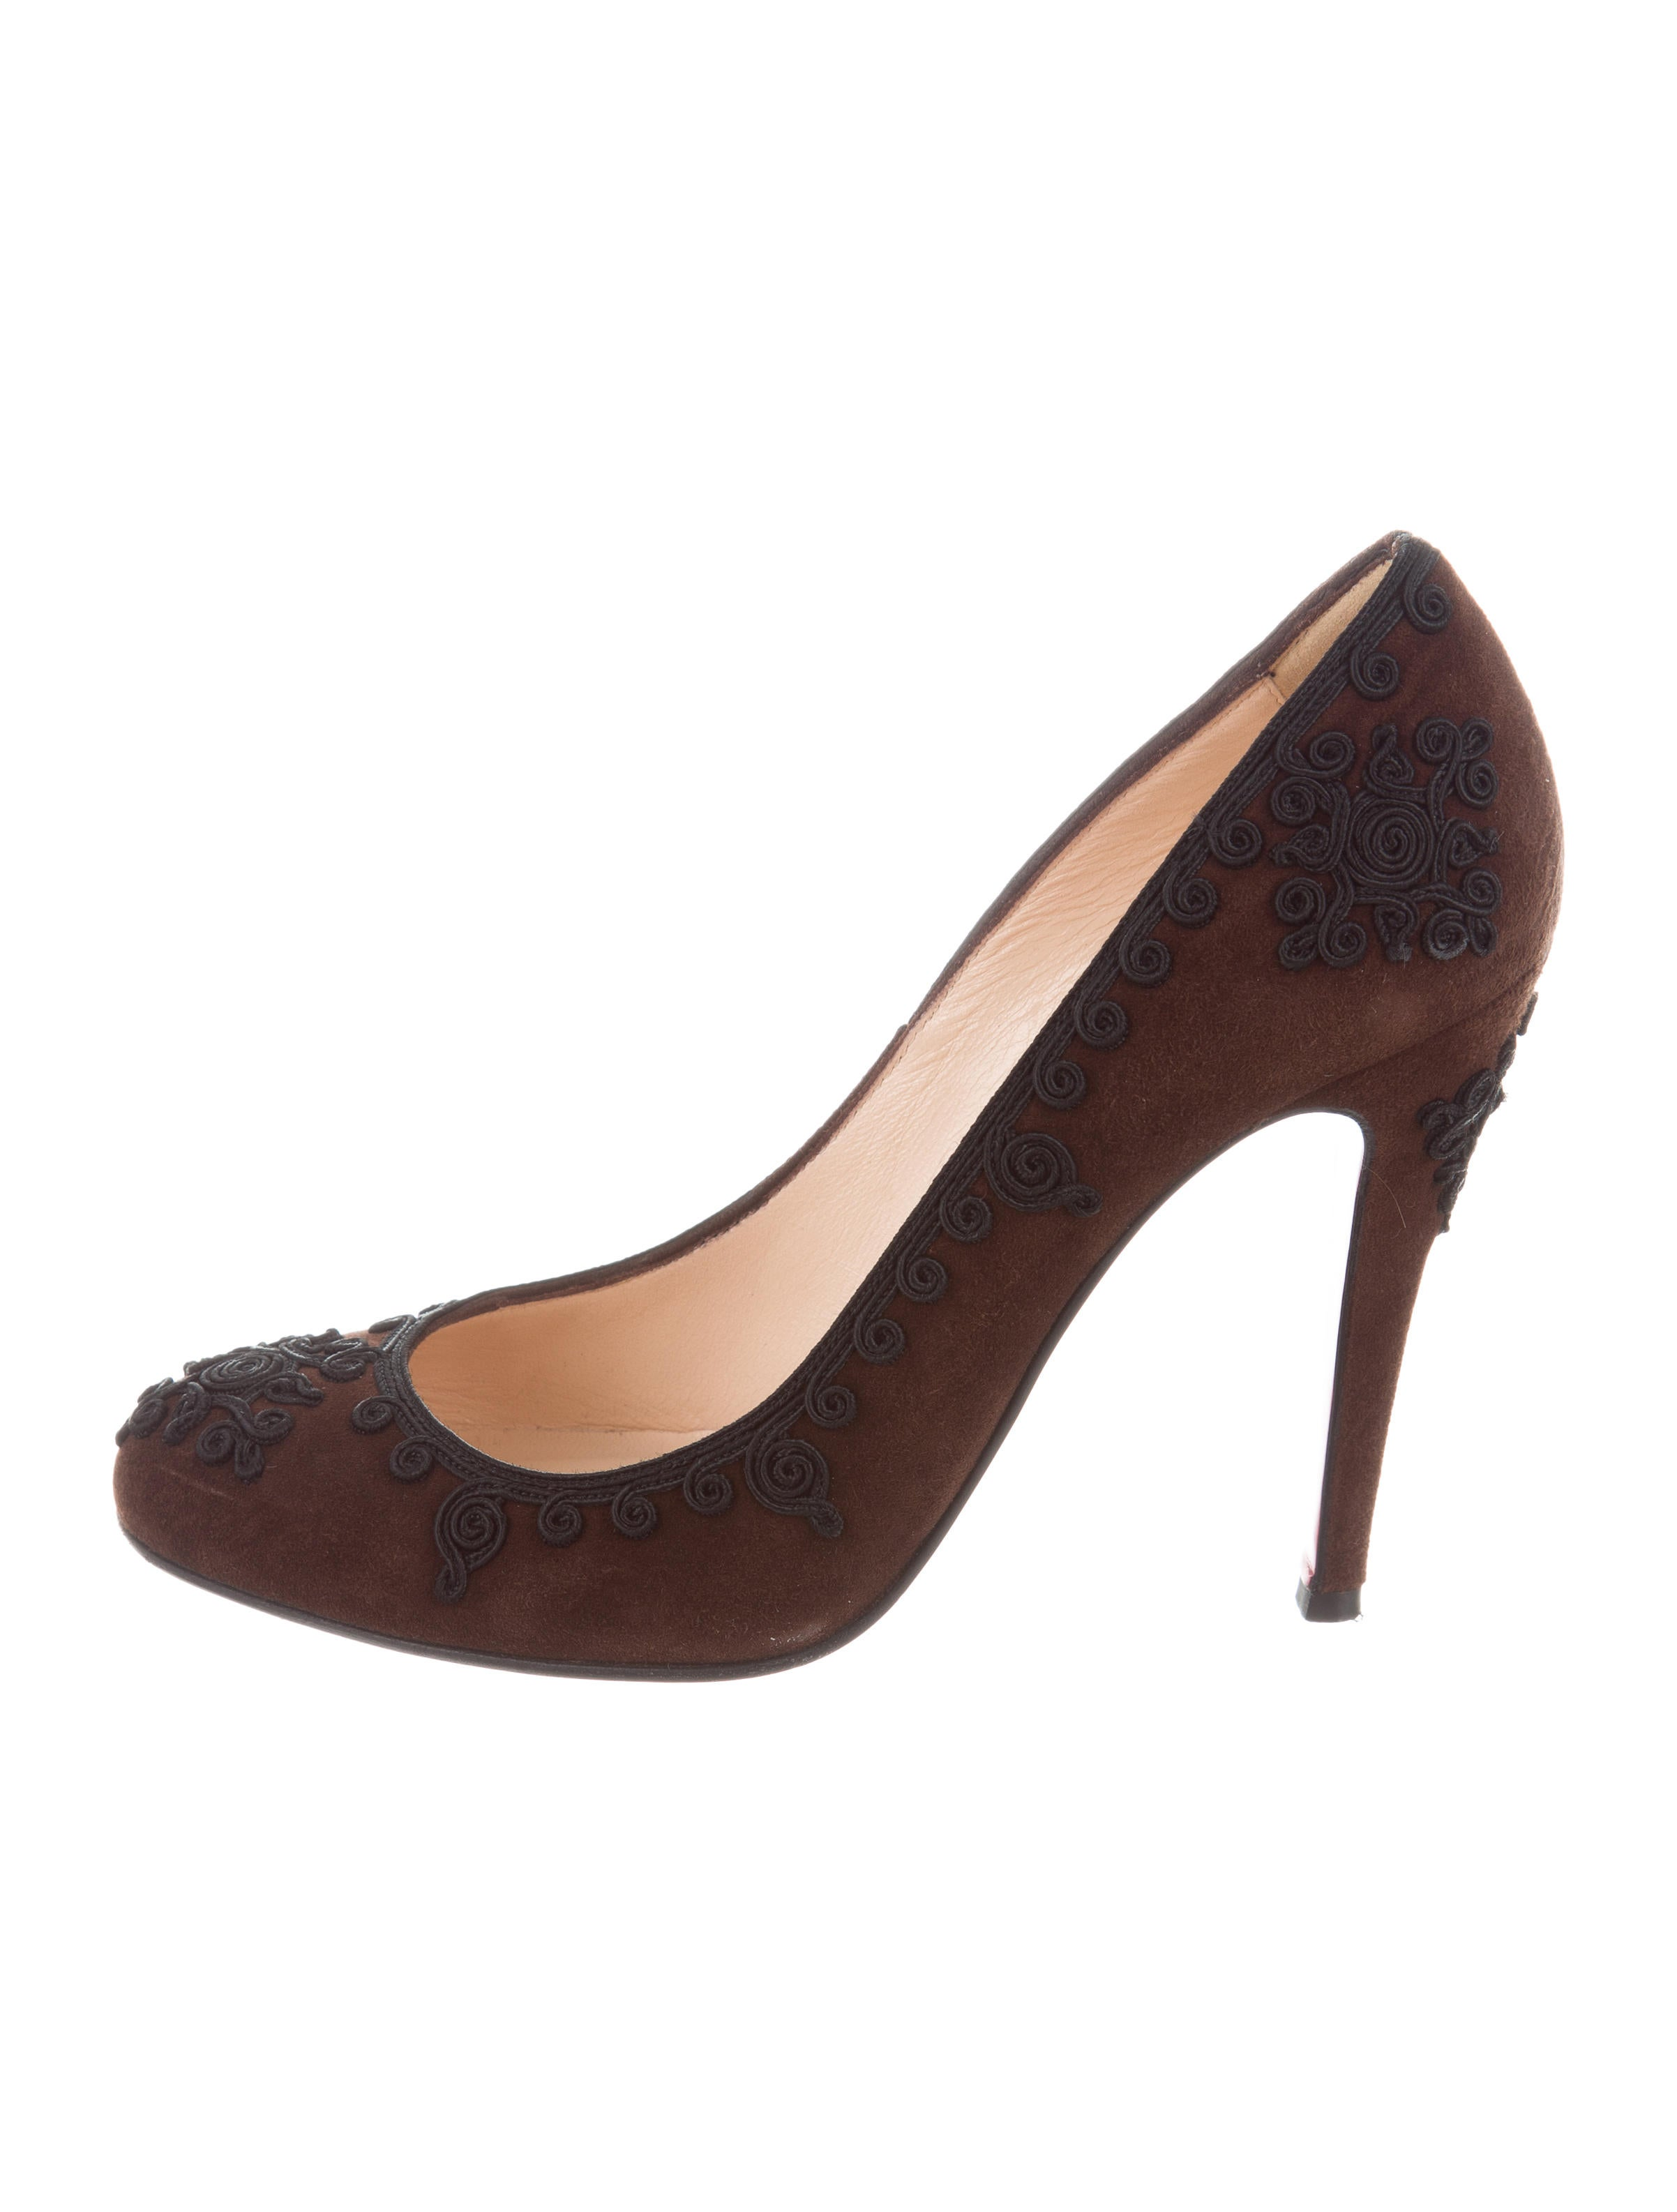 visa payment cheap online sale outlet store Christian Louboutin Suede Filigree Pumps DxAl2